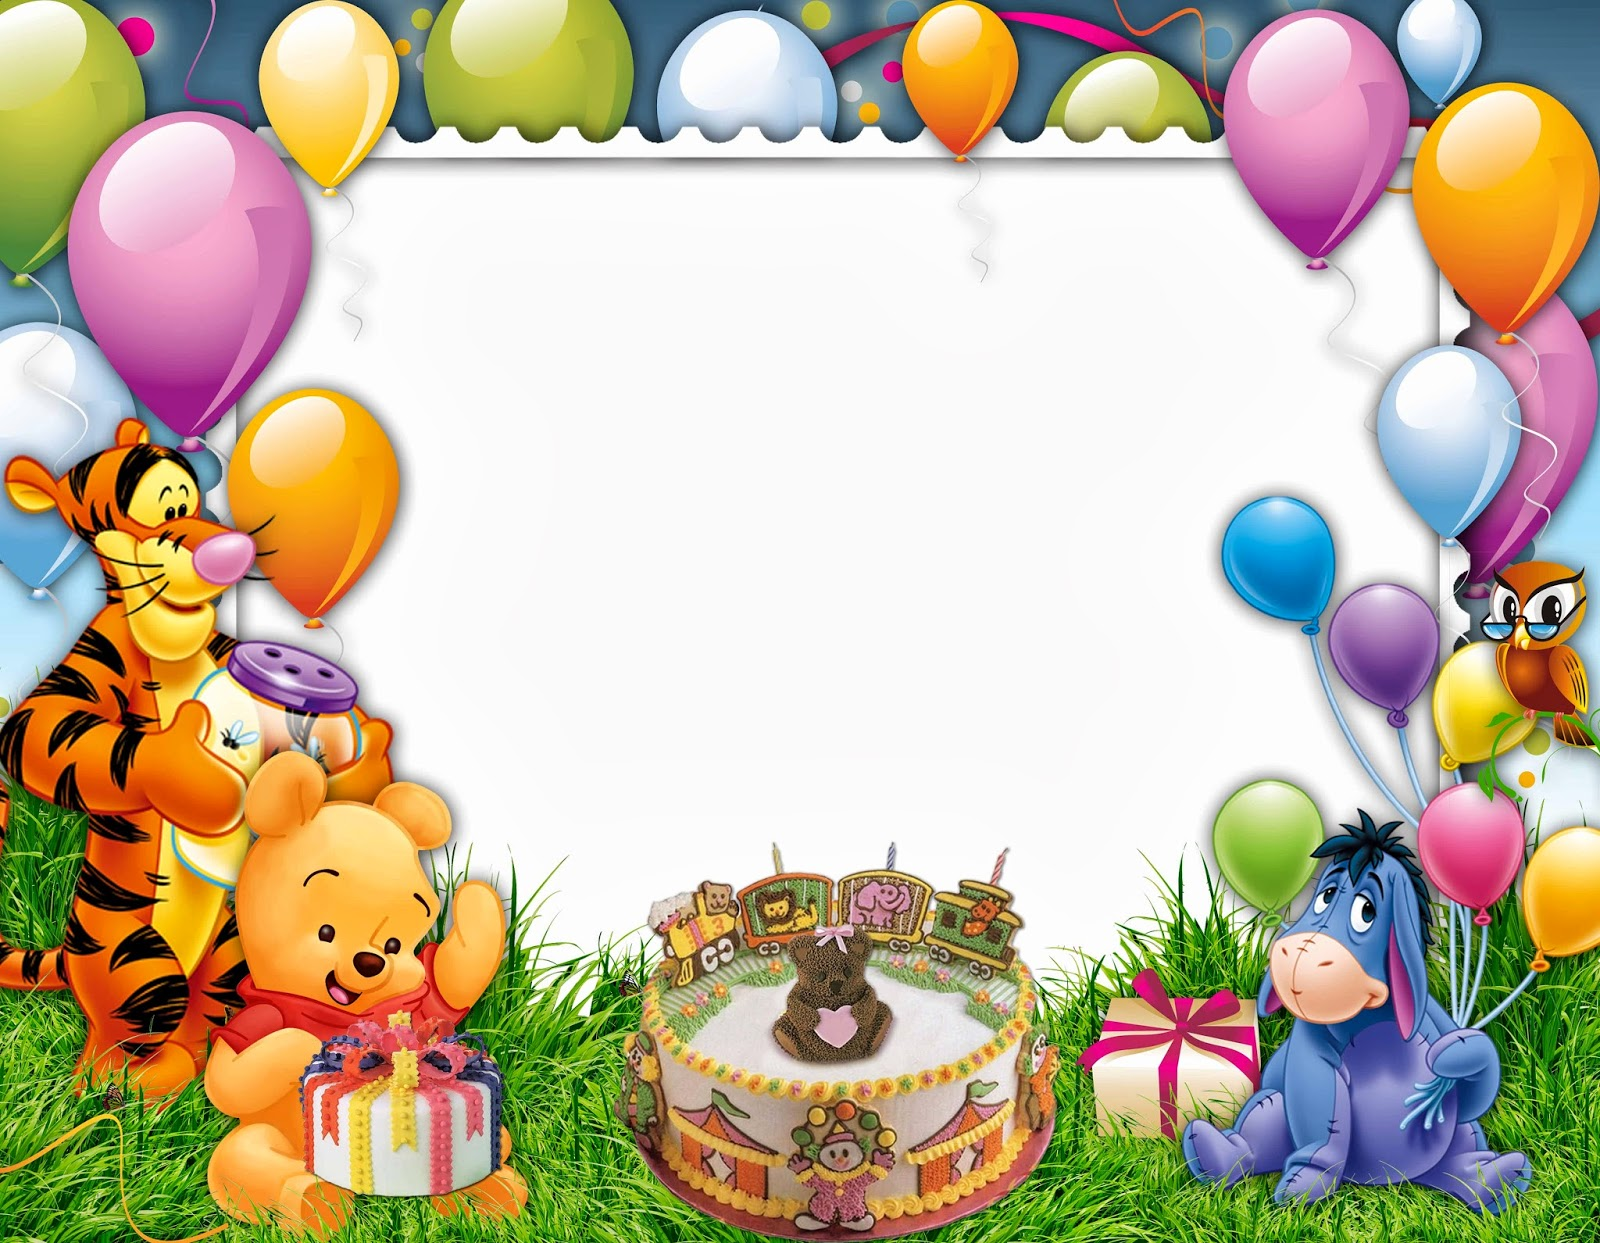 Colorful Hd Birthday Frames Festooning - Picture Frame Ideas ...